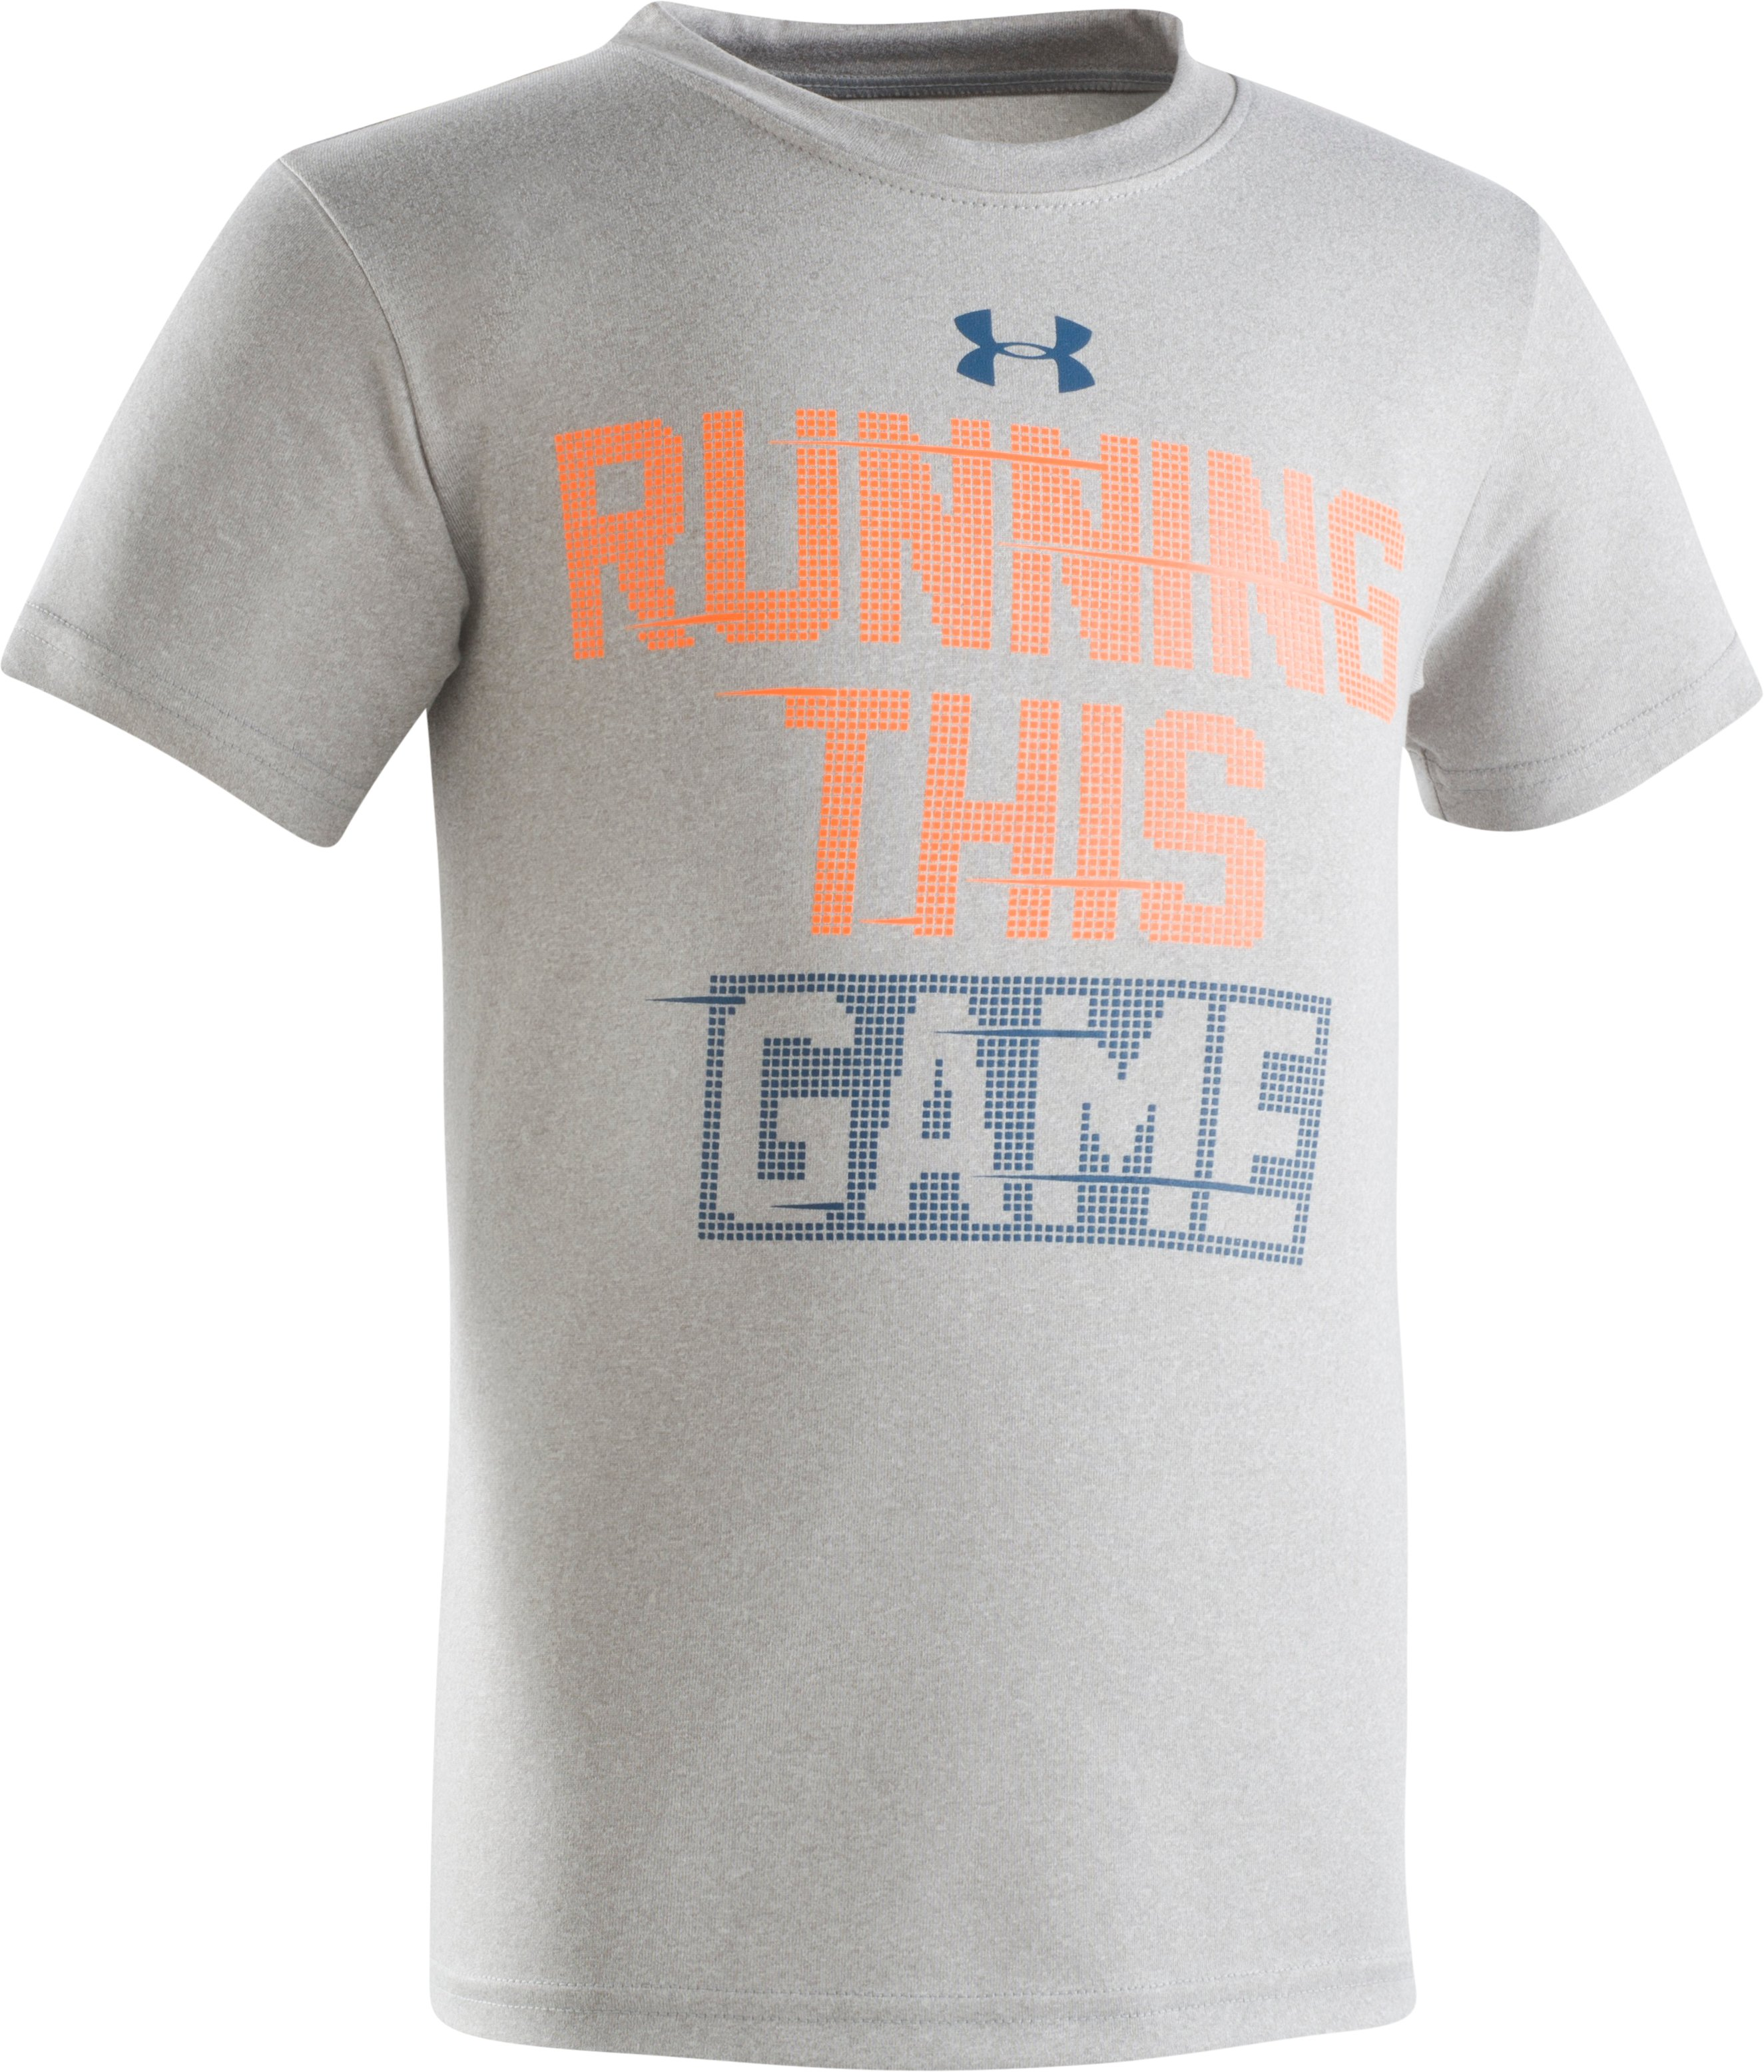 Boys' Toddler UA Running This Game Short Sleeve Shirt, True Gray Heather, Laydown